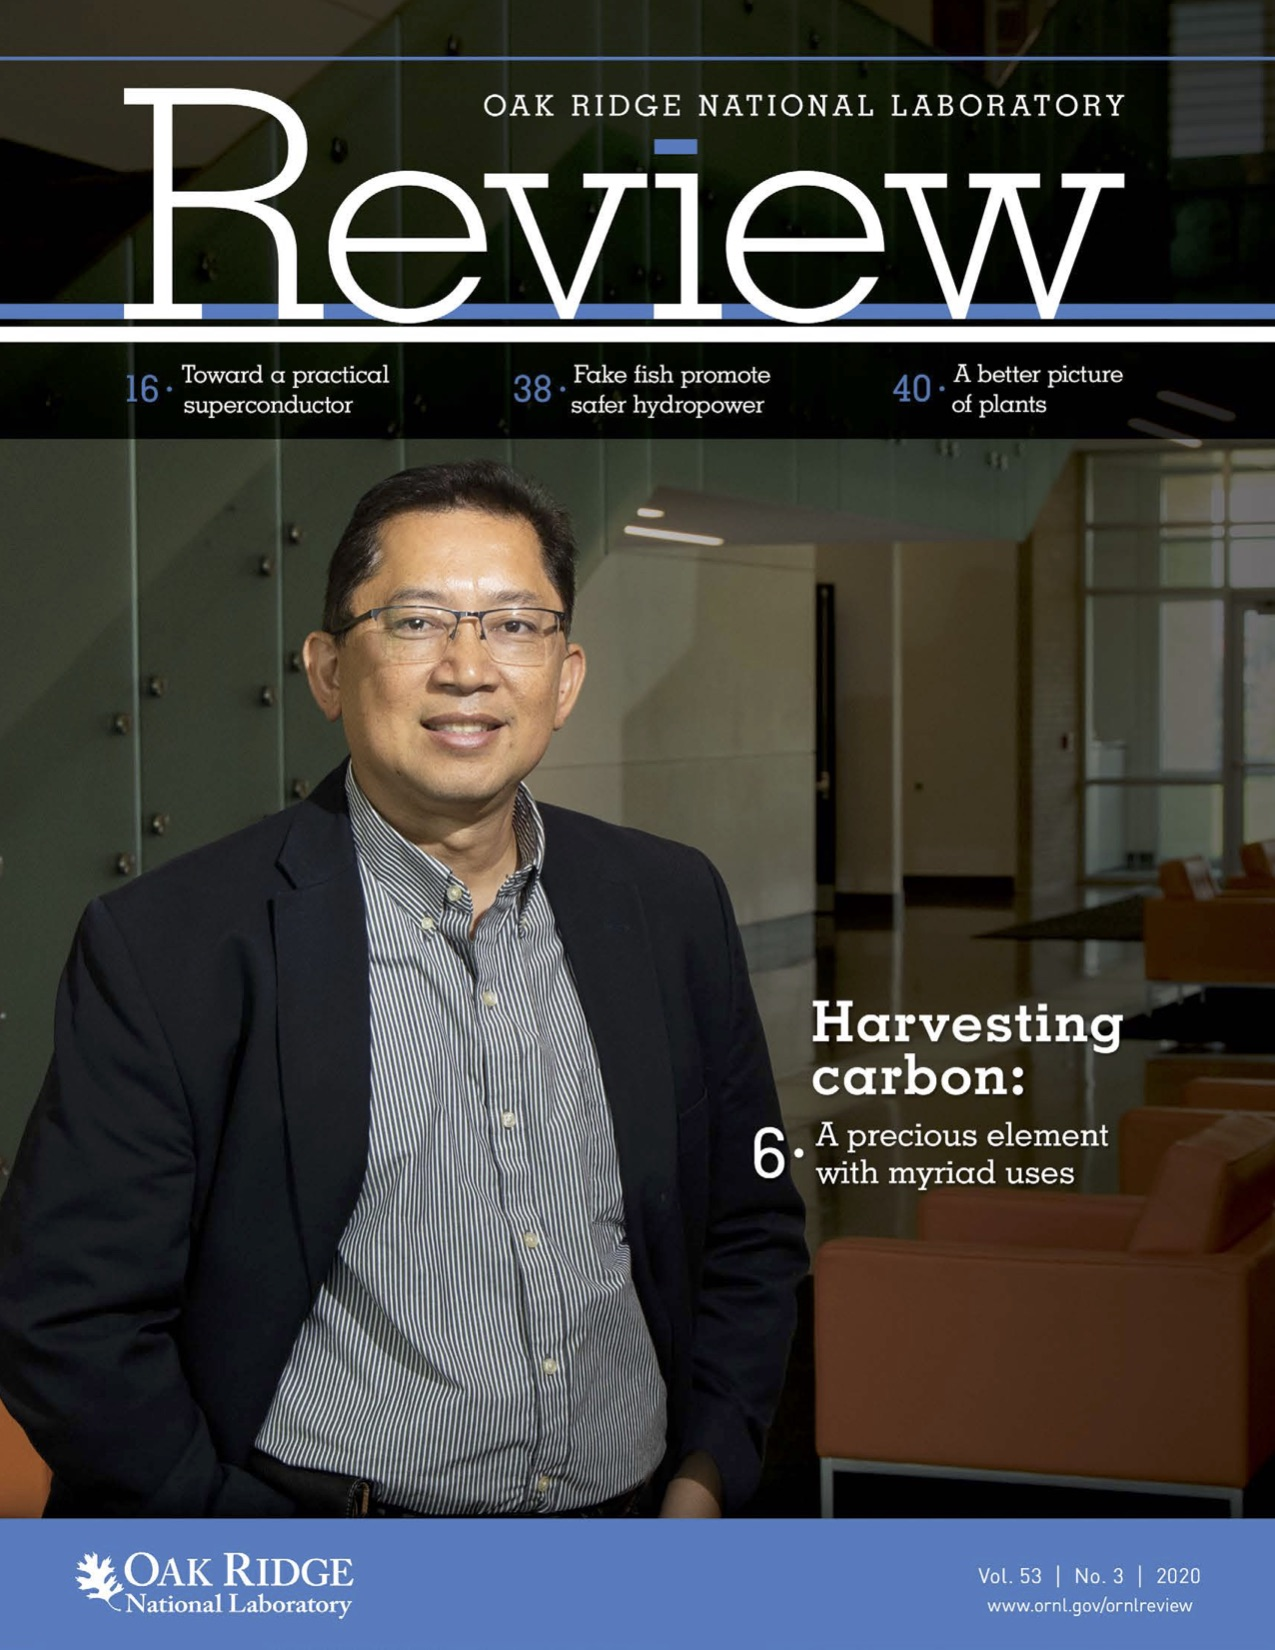 ORNL Review Volume 53 Issue 3 (2020)